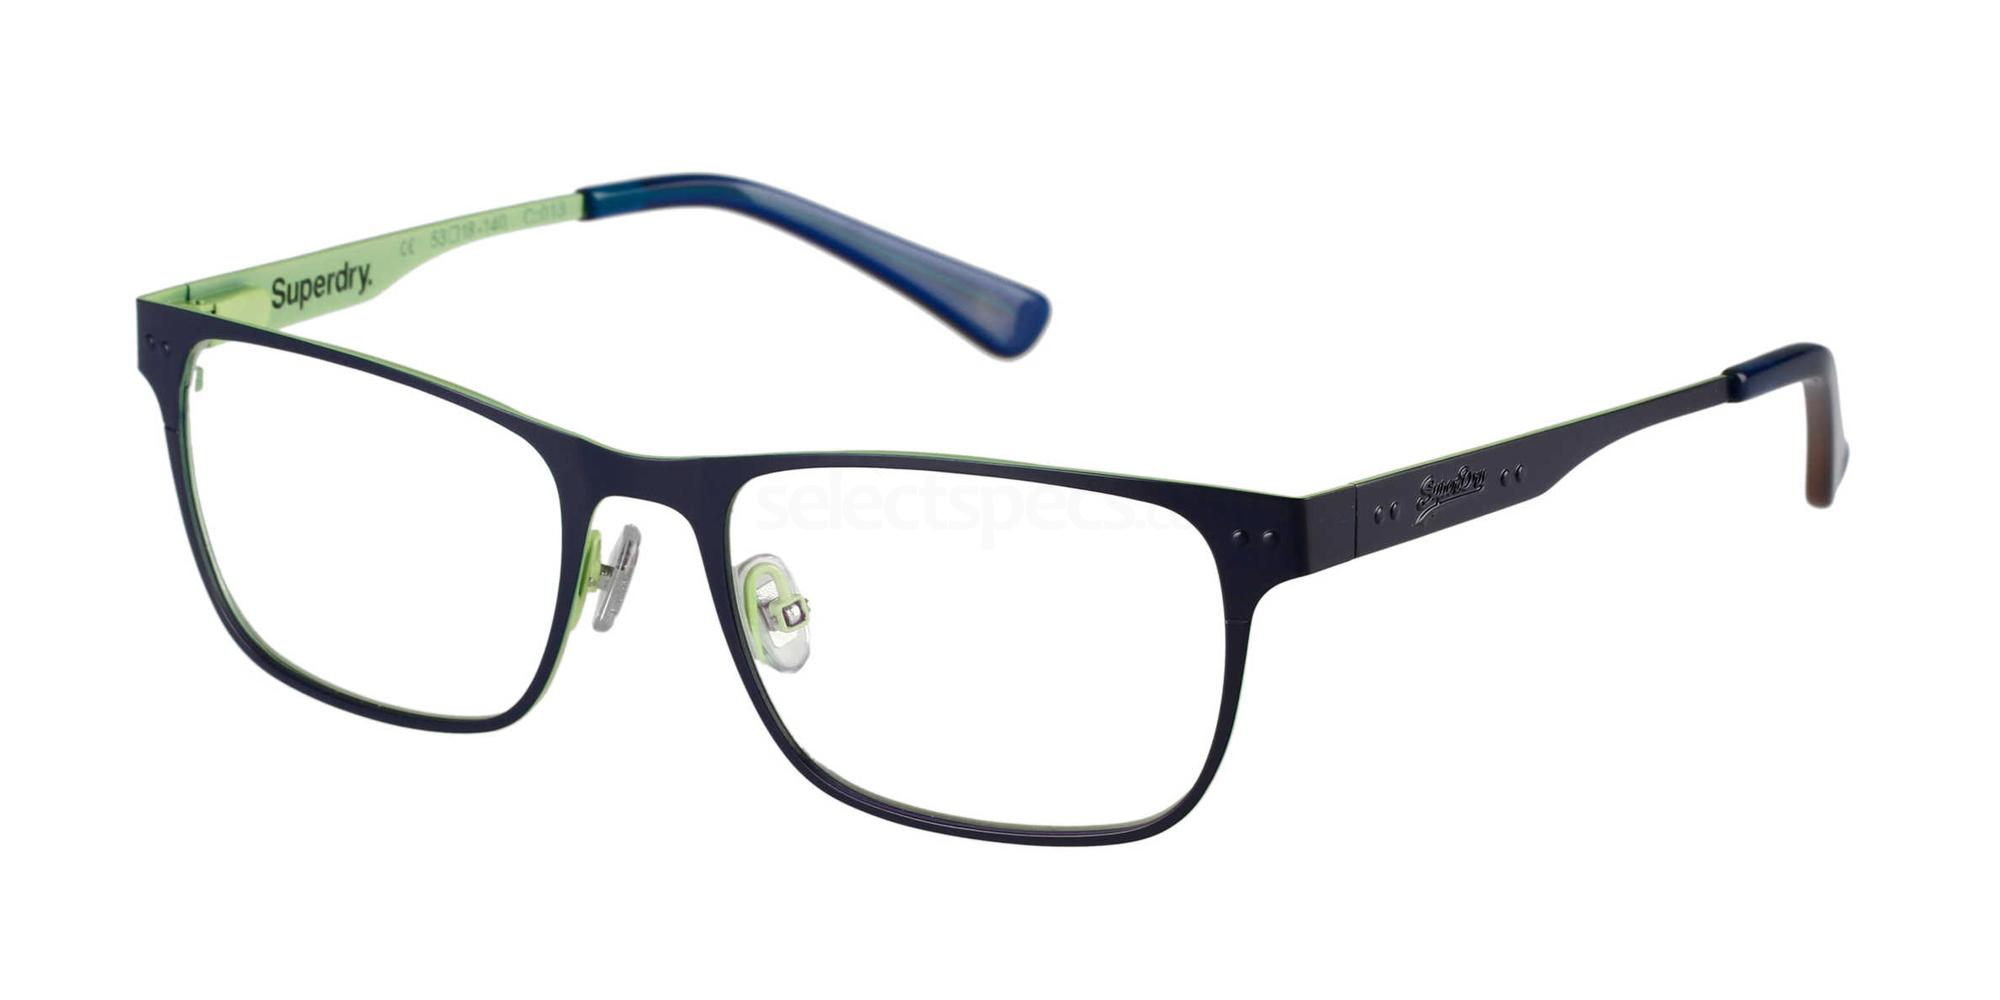 013 SDO-MASON Glasses, Superdry